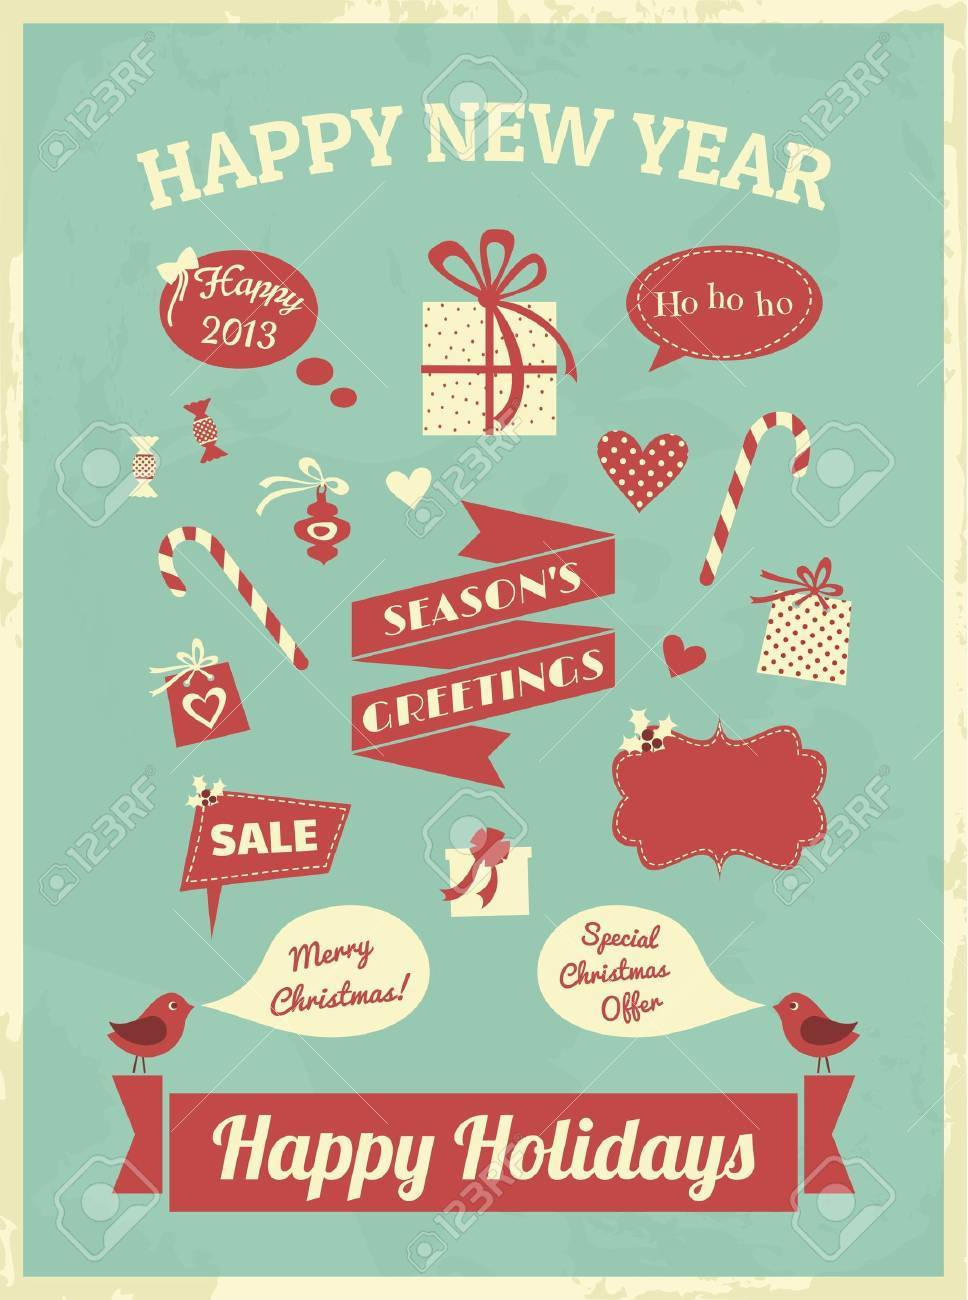 Vintage style design elements for Christmas Stock Vector - 16915023